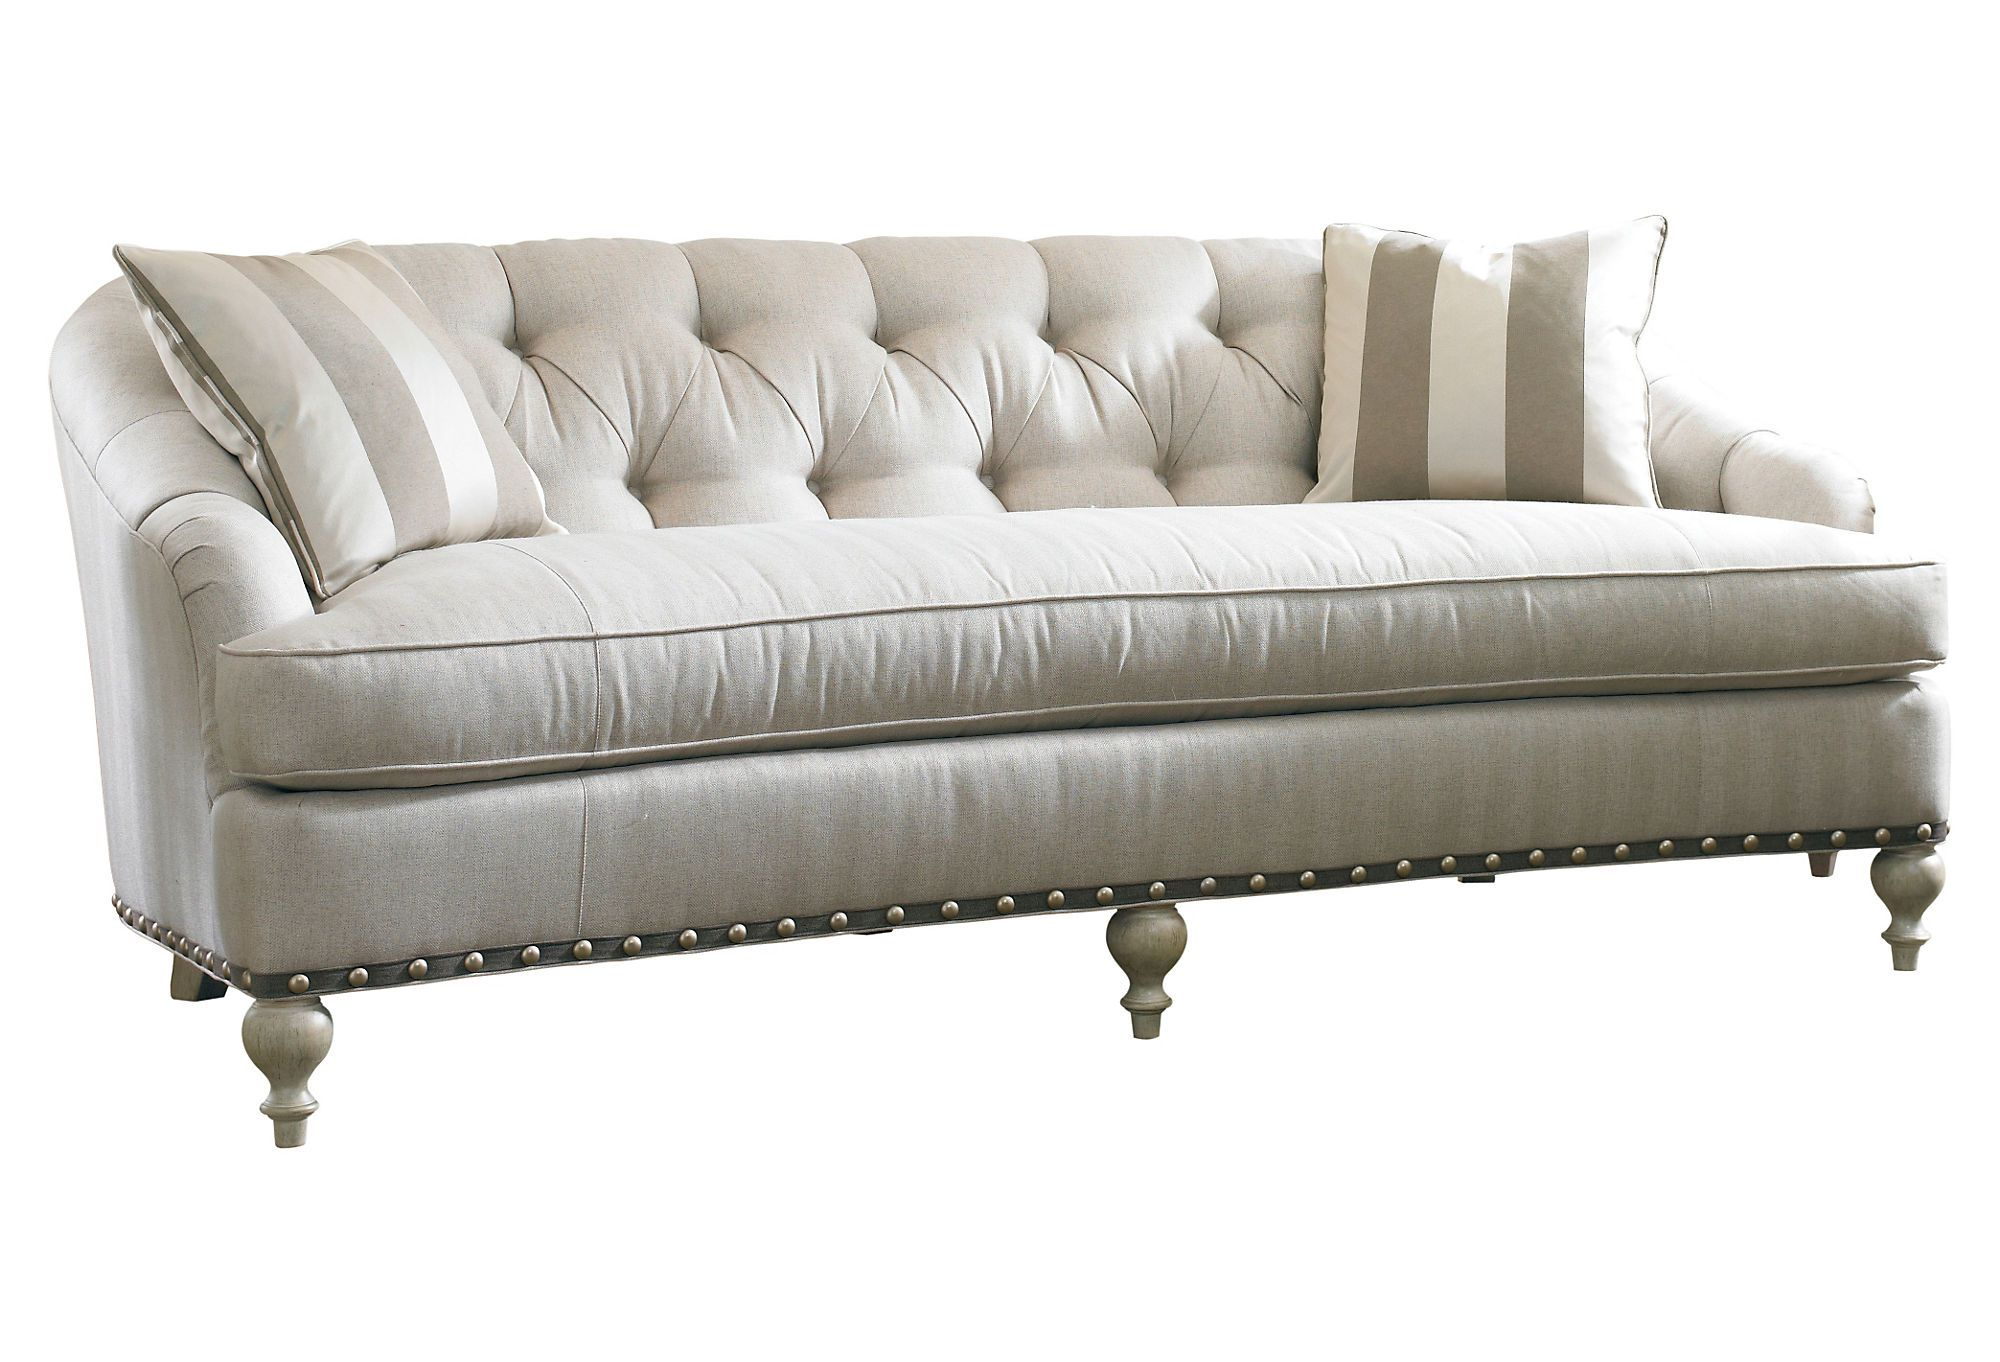 Toulouse 81 Tufted Sofa Beige Le Cool One Kings Lane